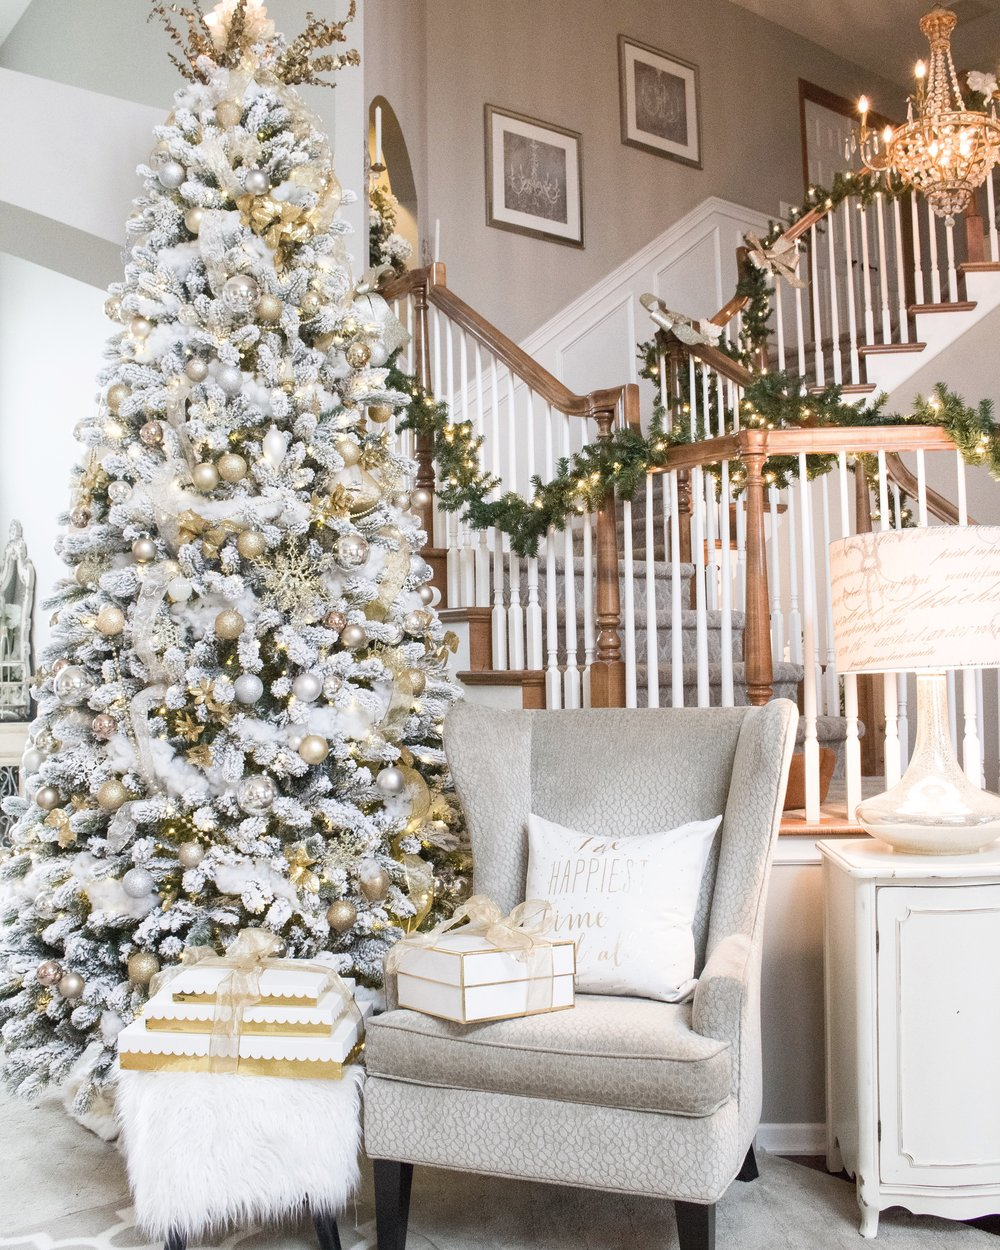 Adding Glam to Christmas Decor - Styled With Lace